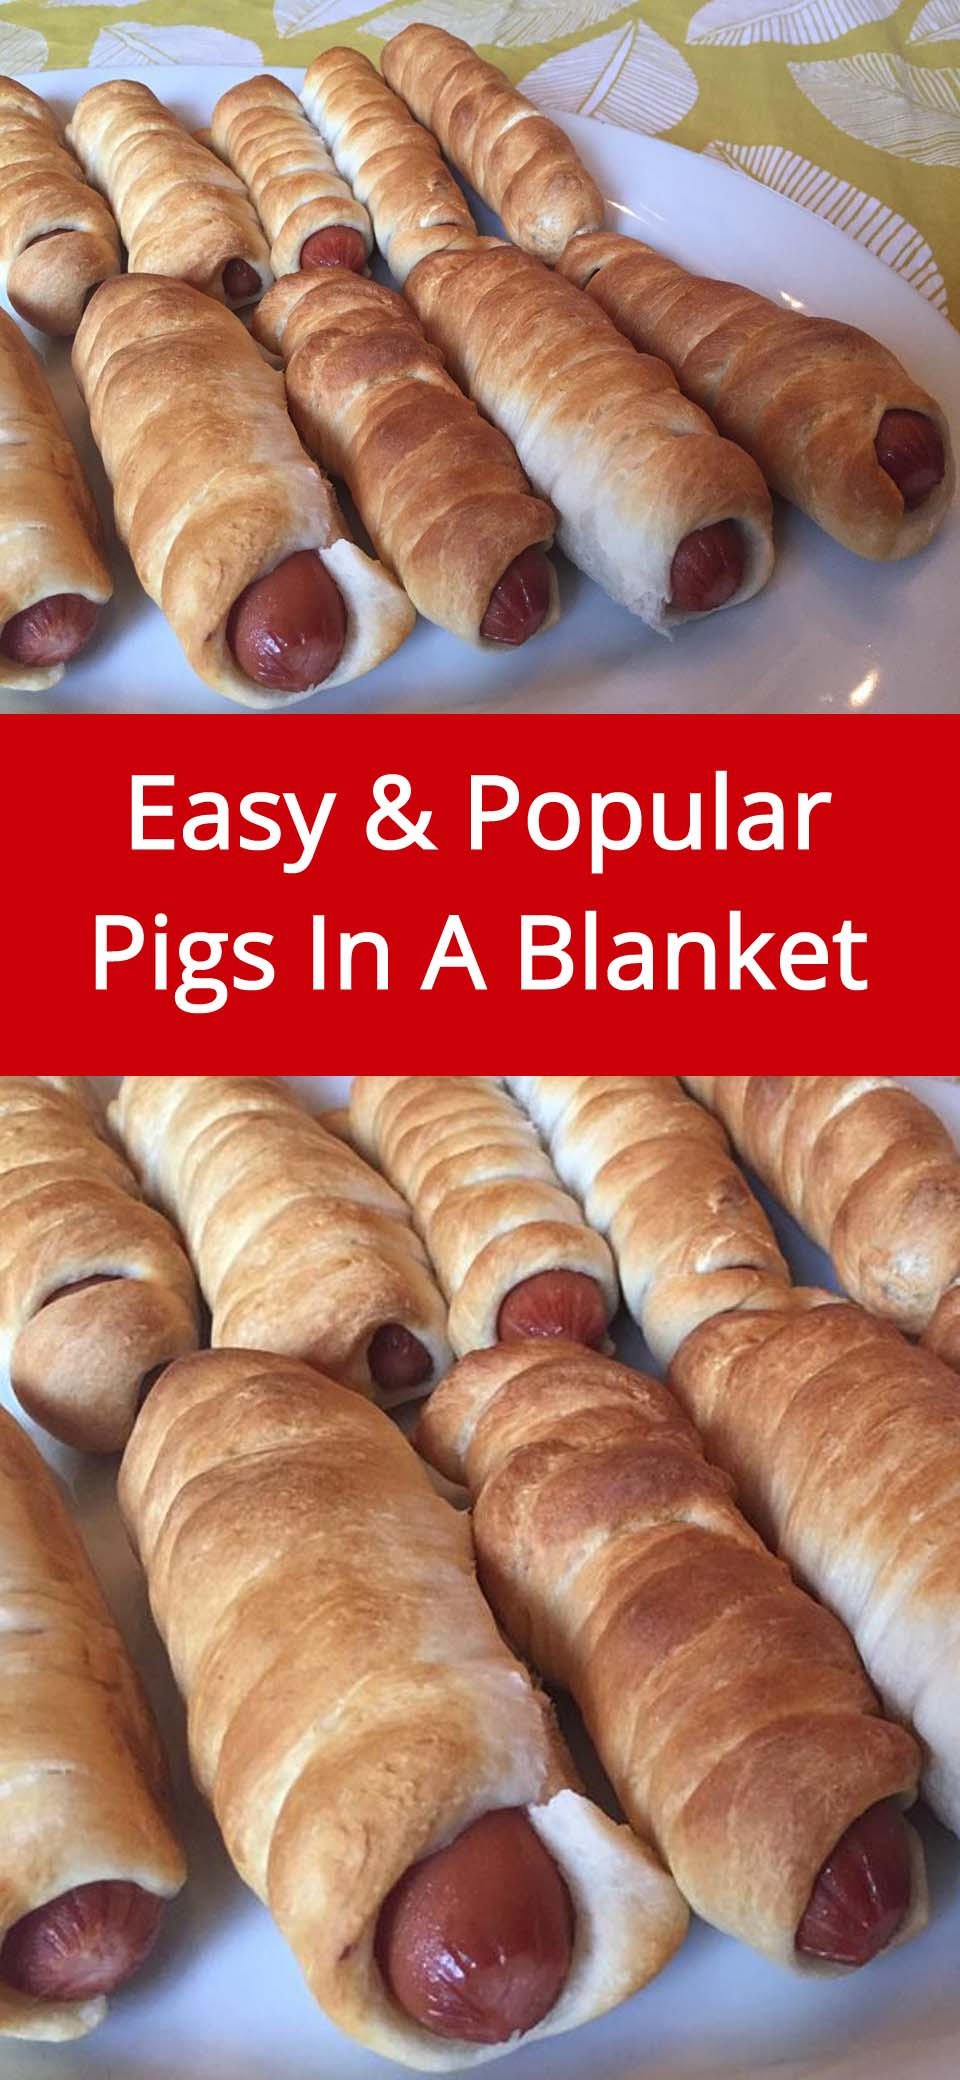 These easy pigs in a blanket are always a hit! Who doesn't love juicy hot dogs wrapped in freshly baked dough? Everybody loves these pigs in a blanket!